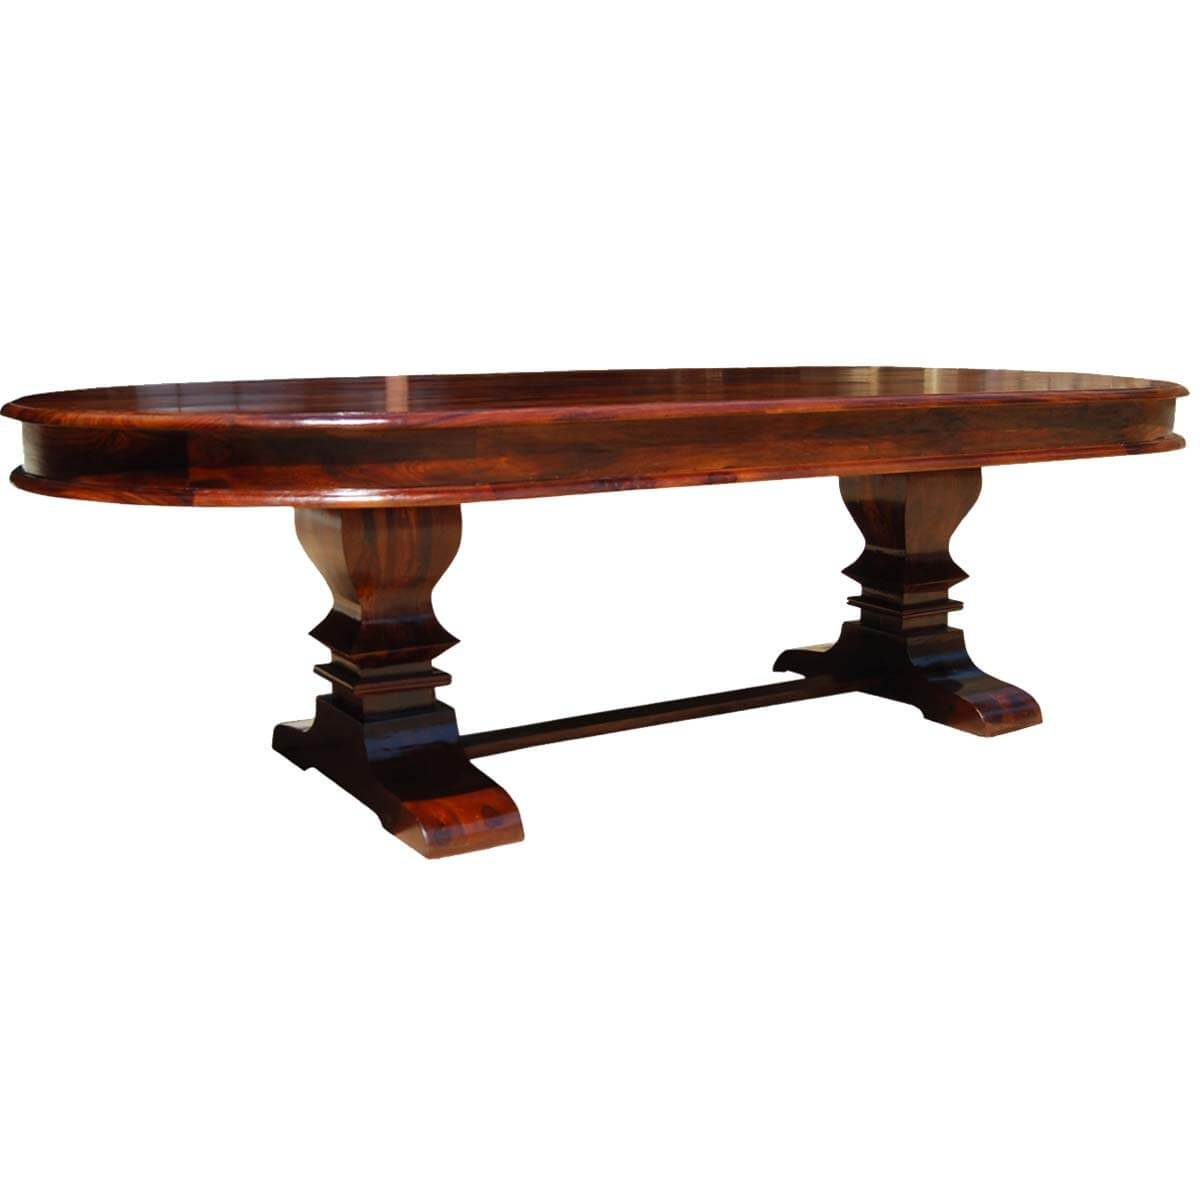 Tuscan Trestle Solid Wood 104quot Oval Dining Table : 69035 from www.sierralivingconcepts.com size 1200 x 1200 jpeg 63kB